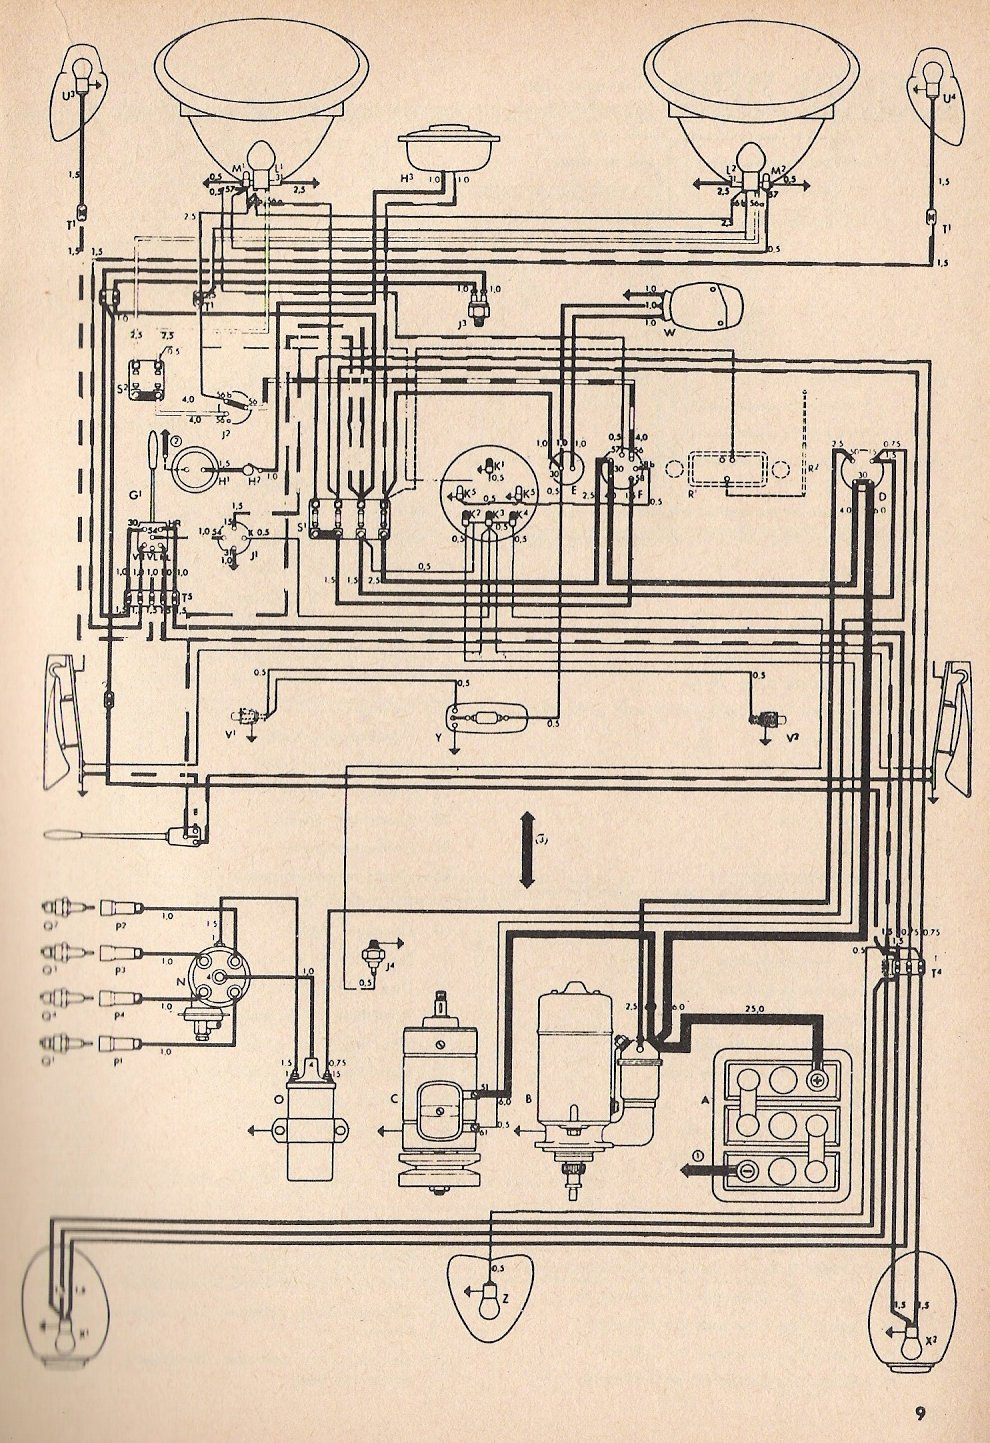 72 bug wiring diagram [ 990 x 1443 Pixel ]